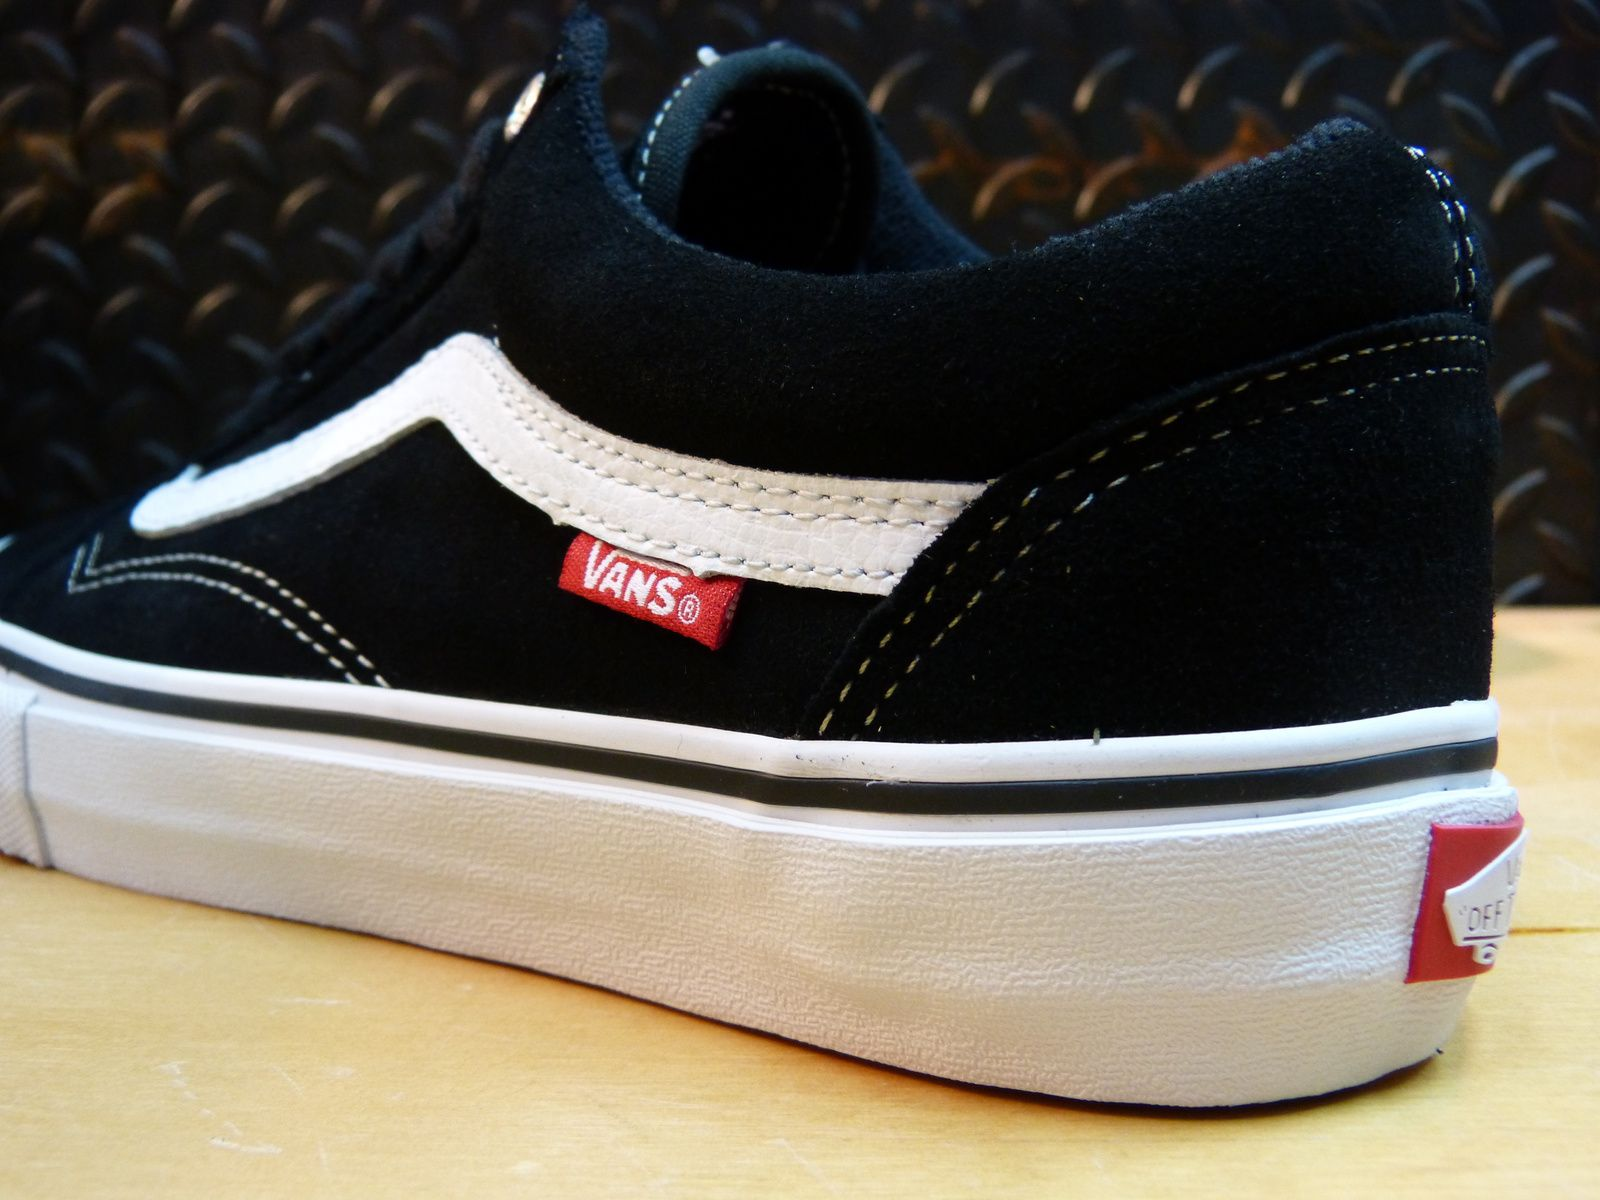 Vans Pro Skate Fall14 part 1